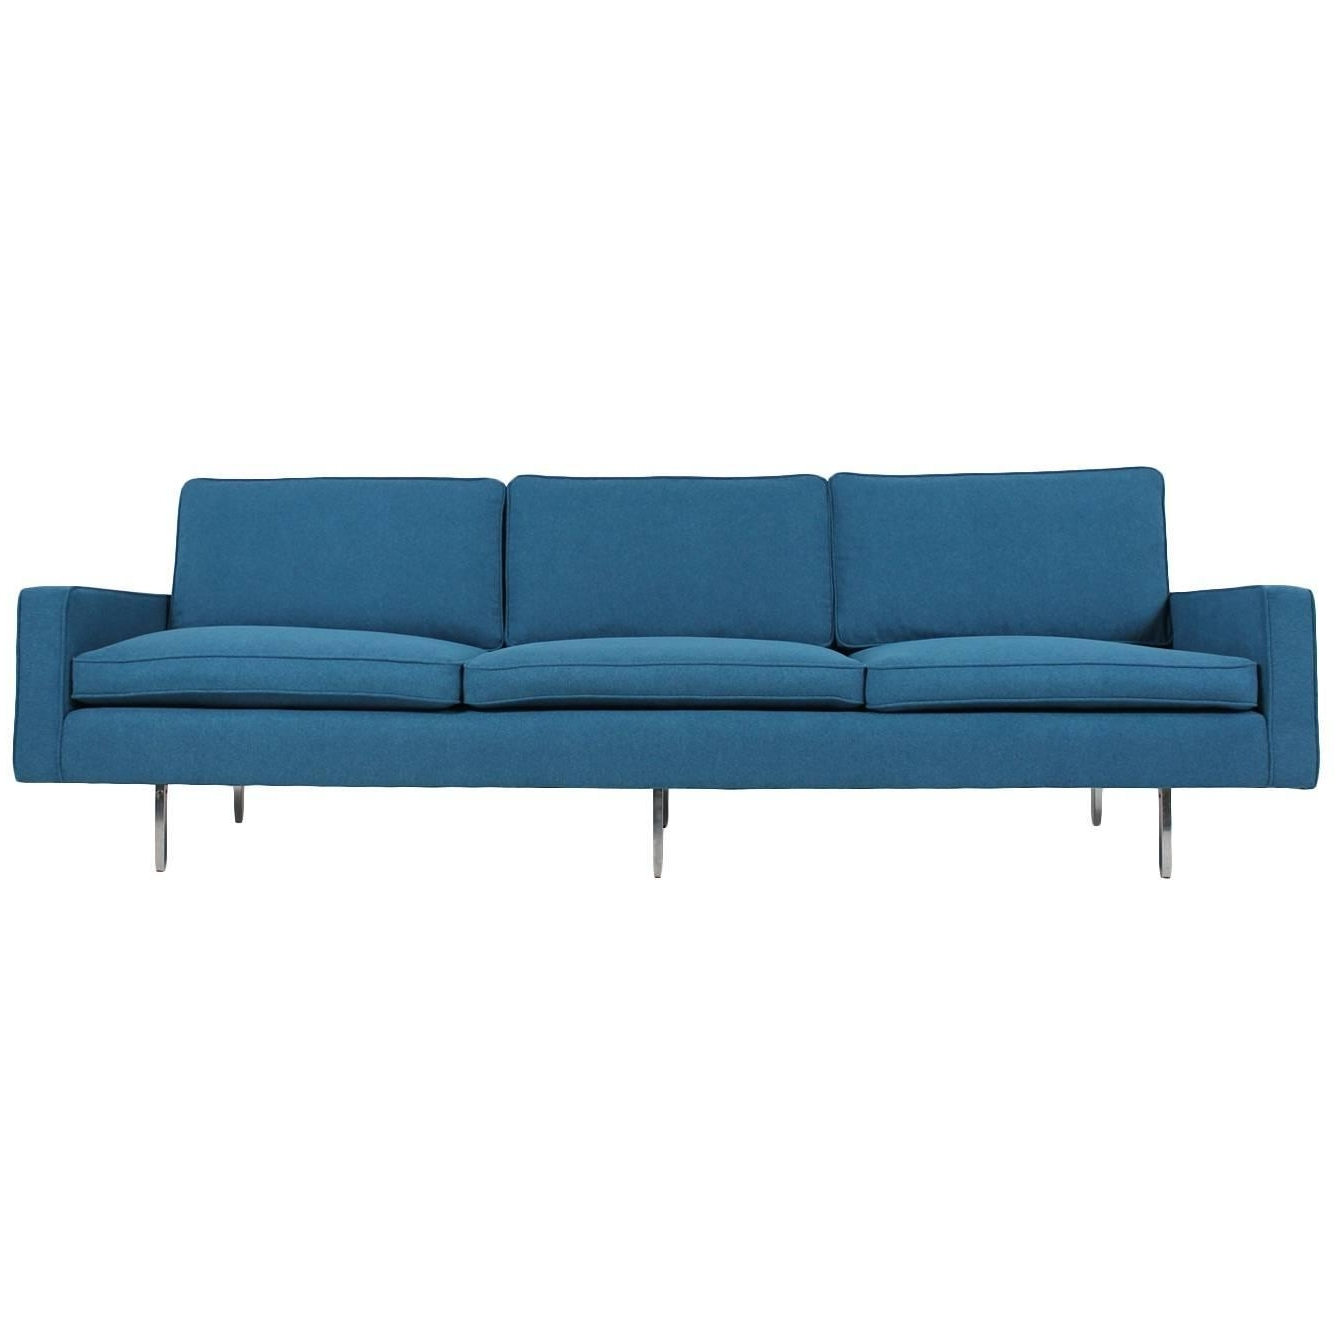 Widely Used Florence Knoll Sofas – 61 For Sale At 1Stdibs Within Florence Grand Sofas (View 20 of 20)